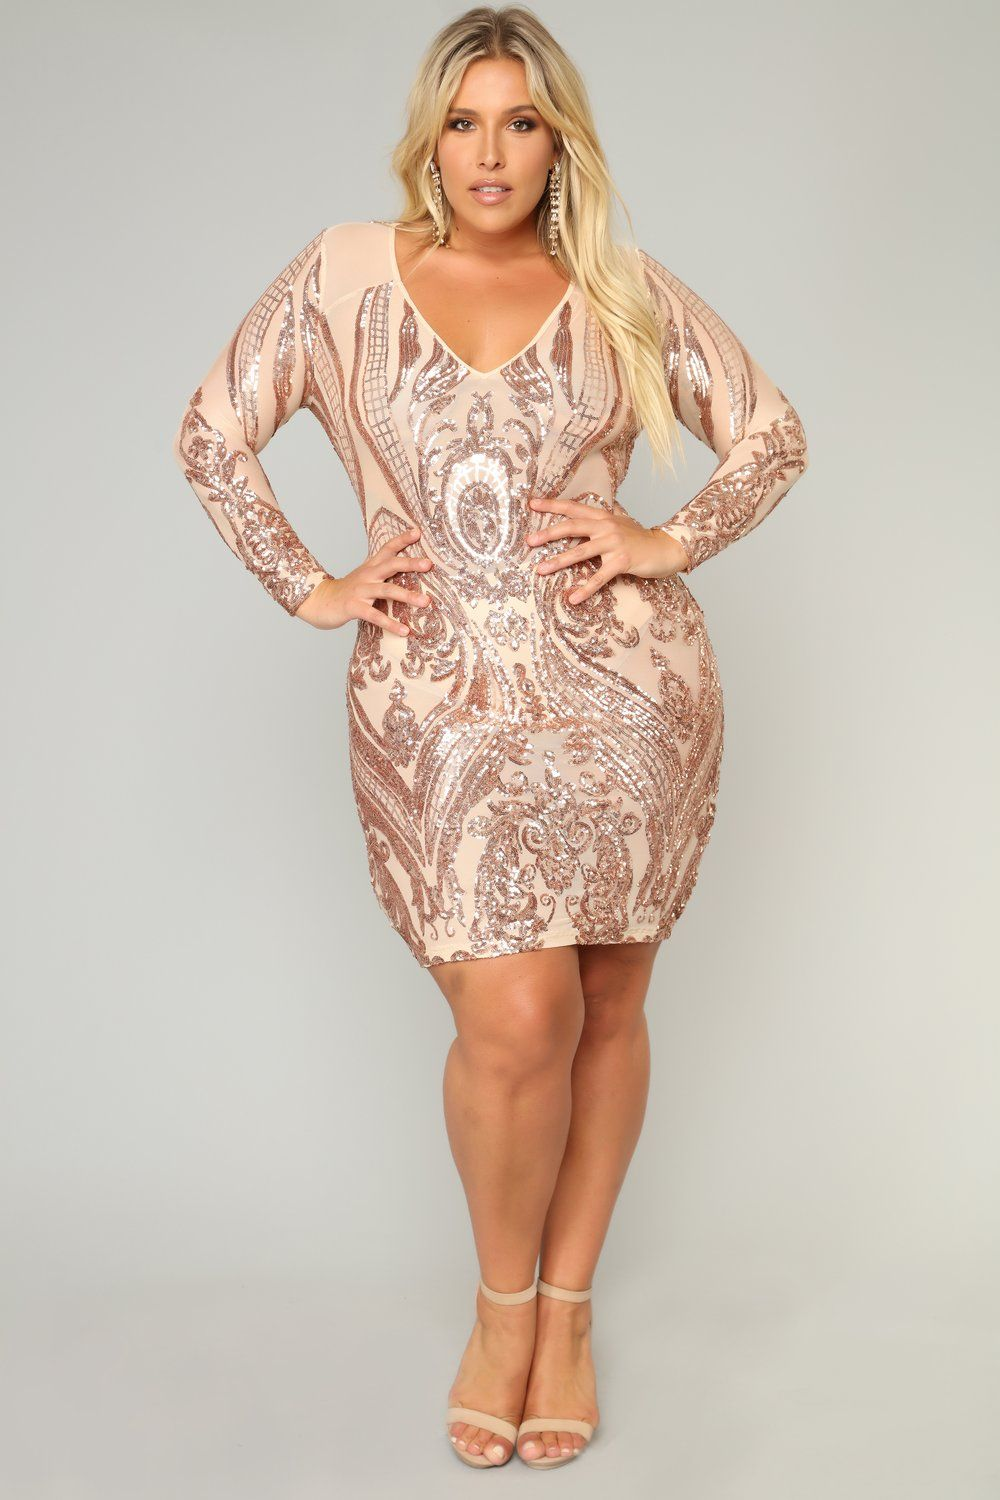 499f9ef9d4e2 Miss Fortune Sequin Dress - Nude/Rose Gold in 2019 | Plus size ...